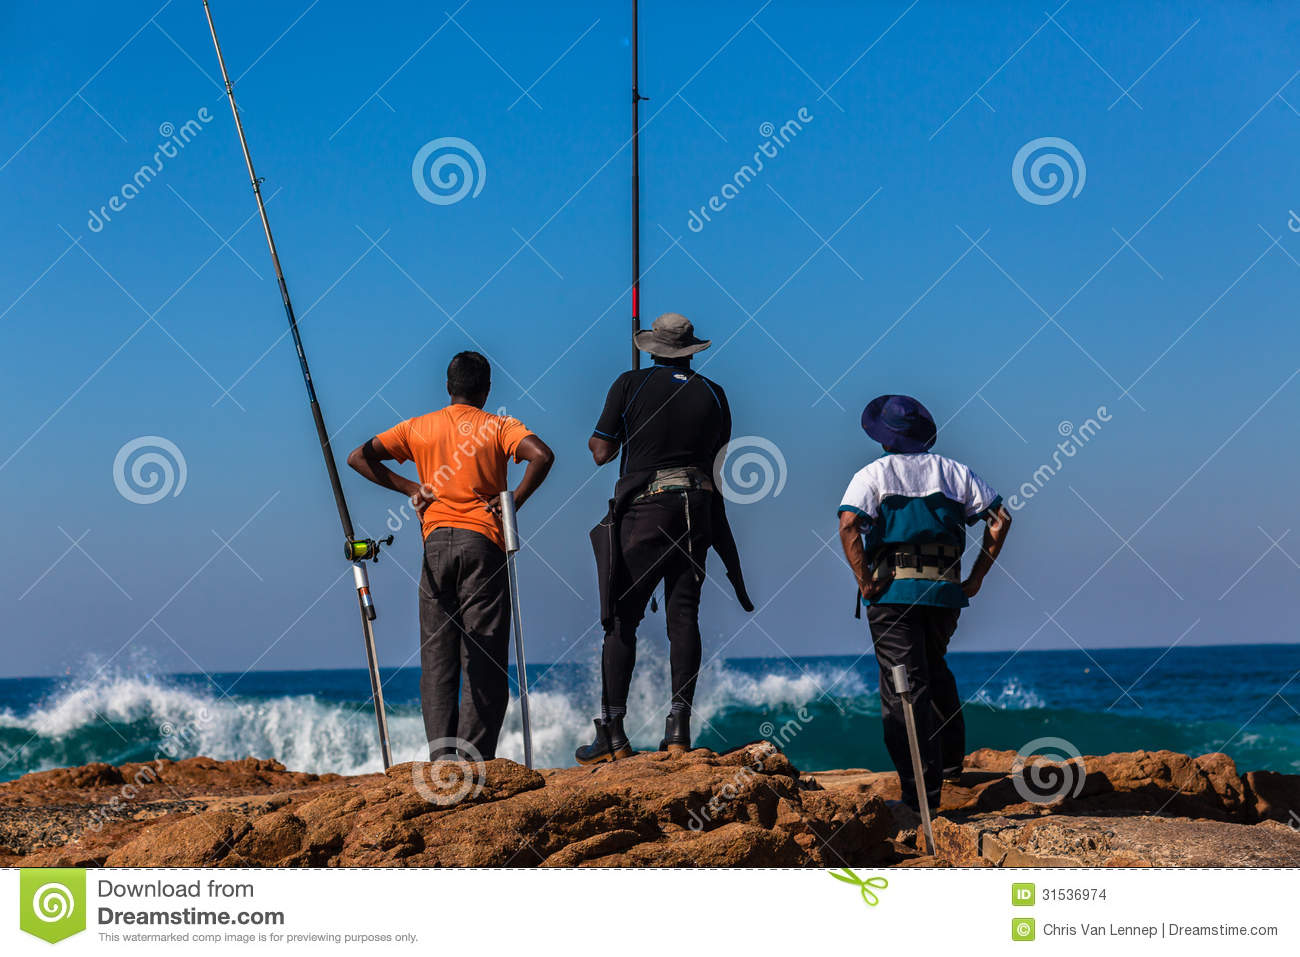 Fishermen rods rocks blue sea editorial stock image for Into the blue fishing